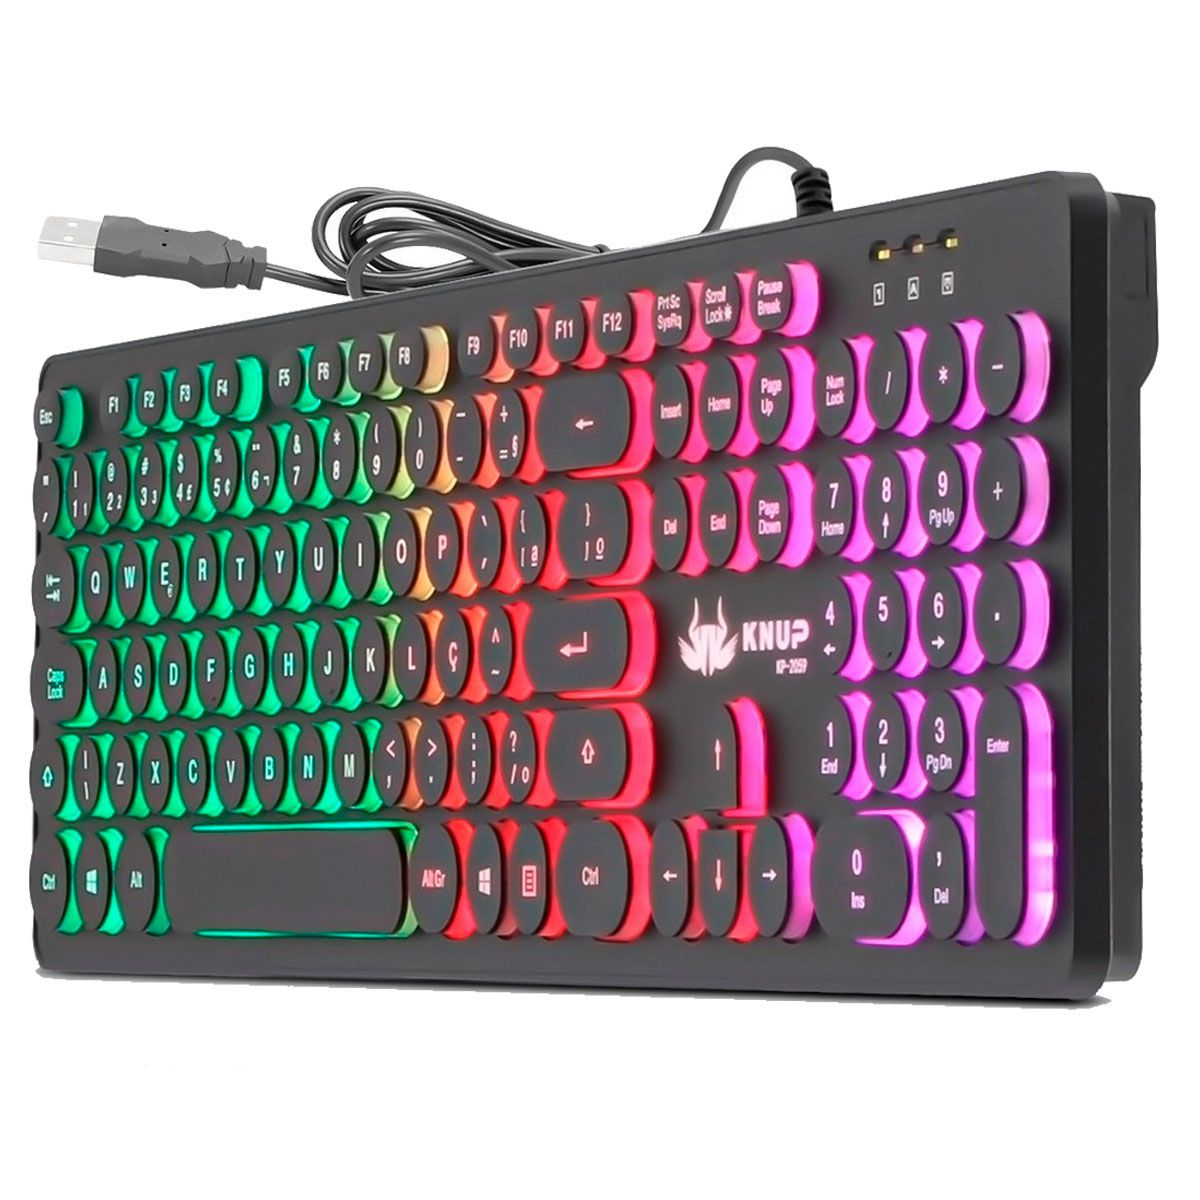 Kit Gamer Completo Headset + Teclado + Mouse + M Pad para PC